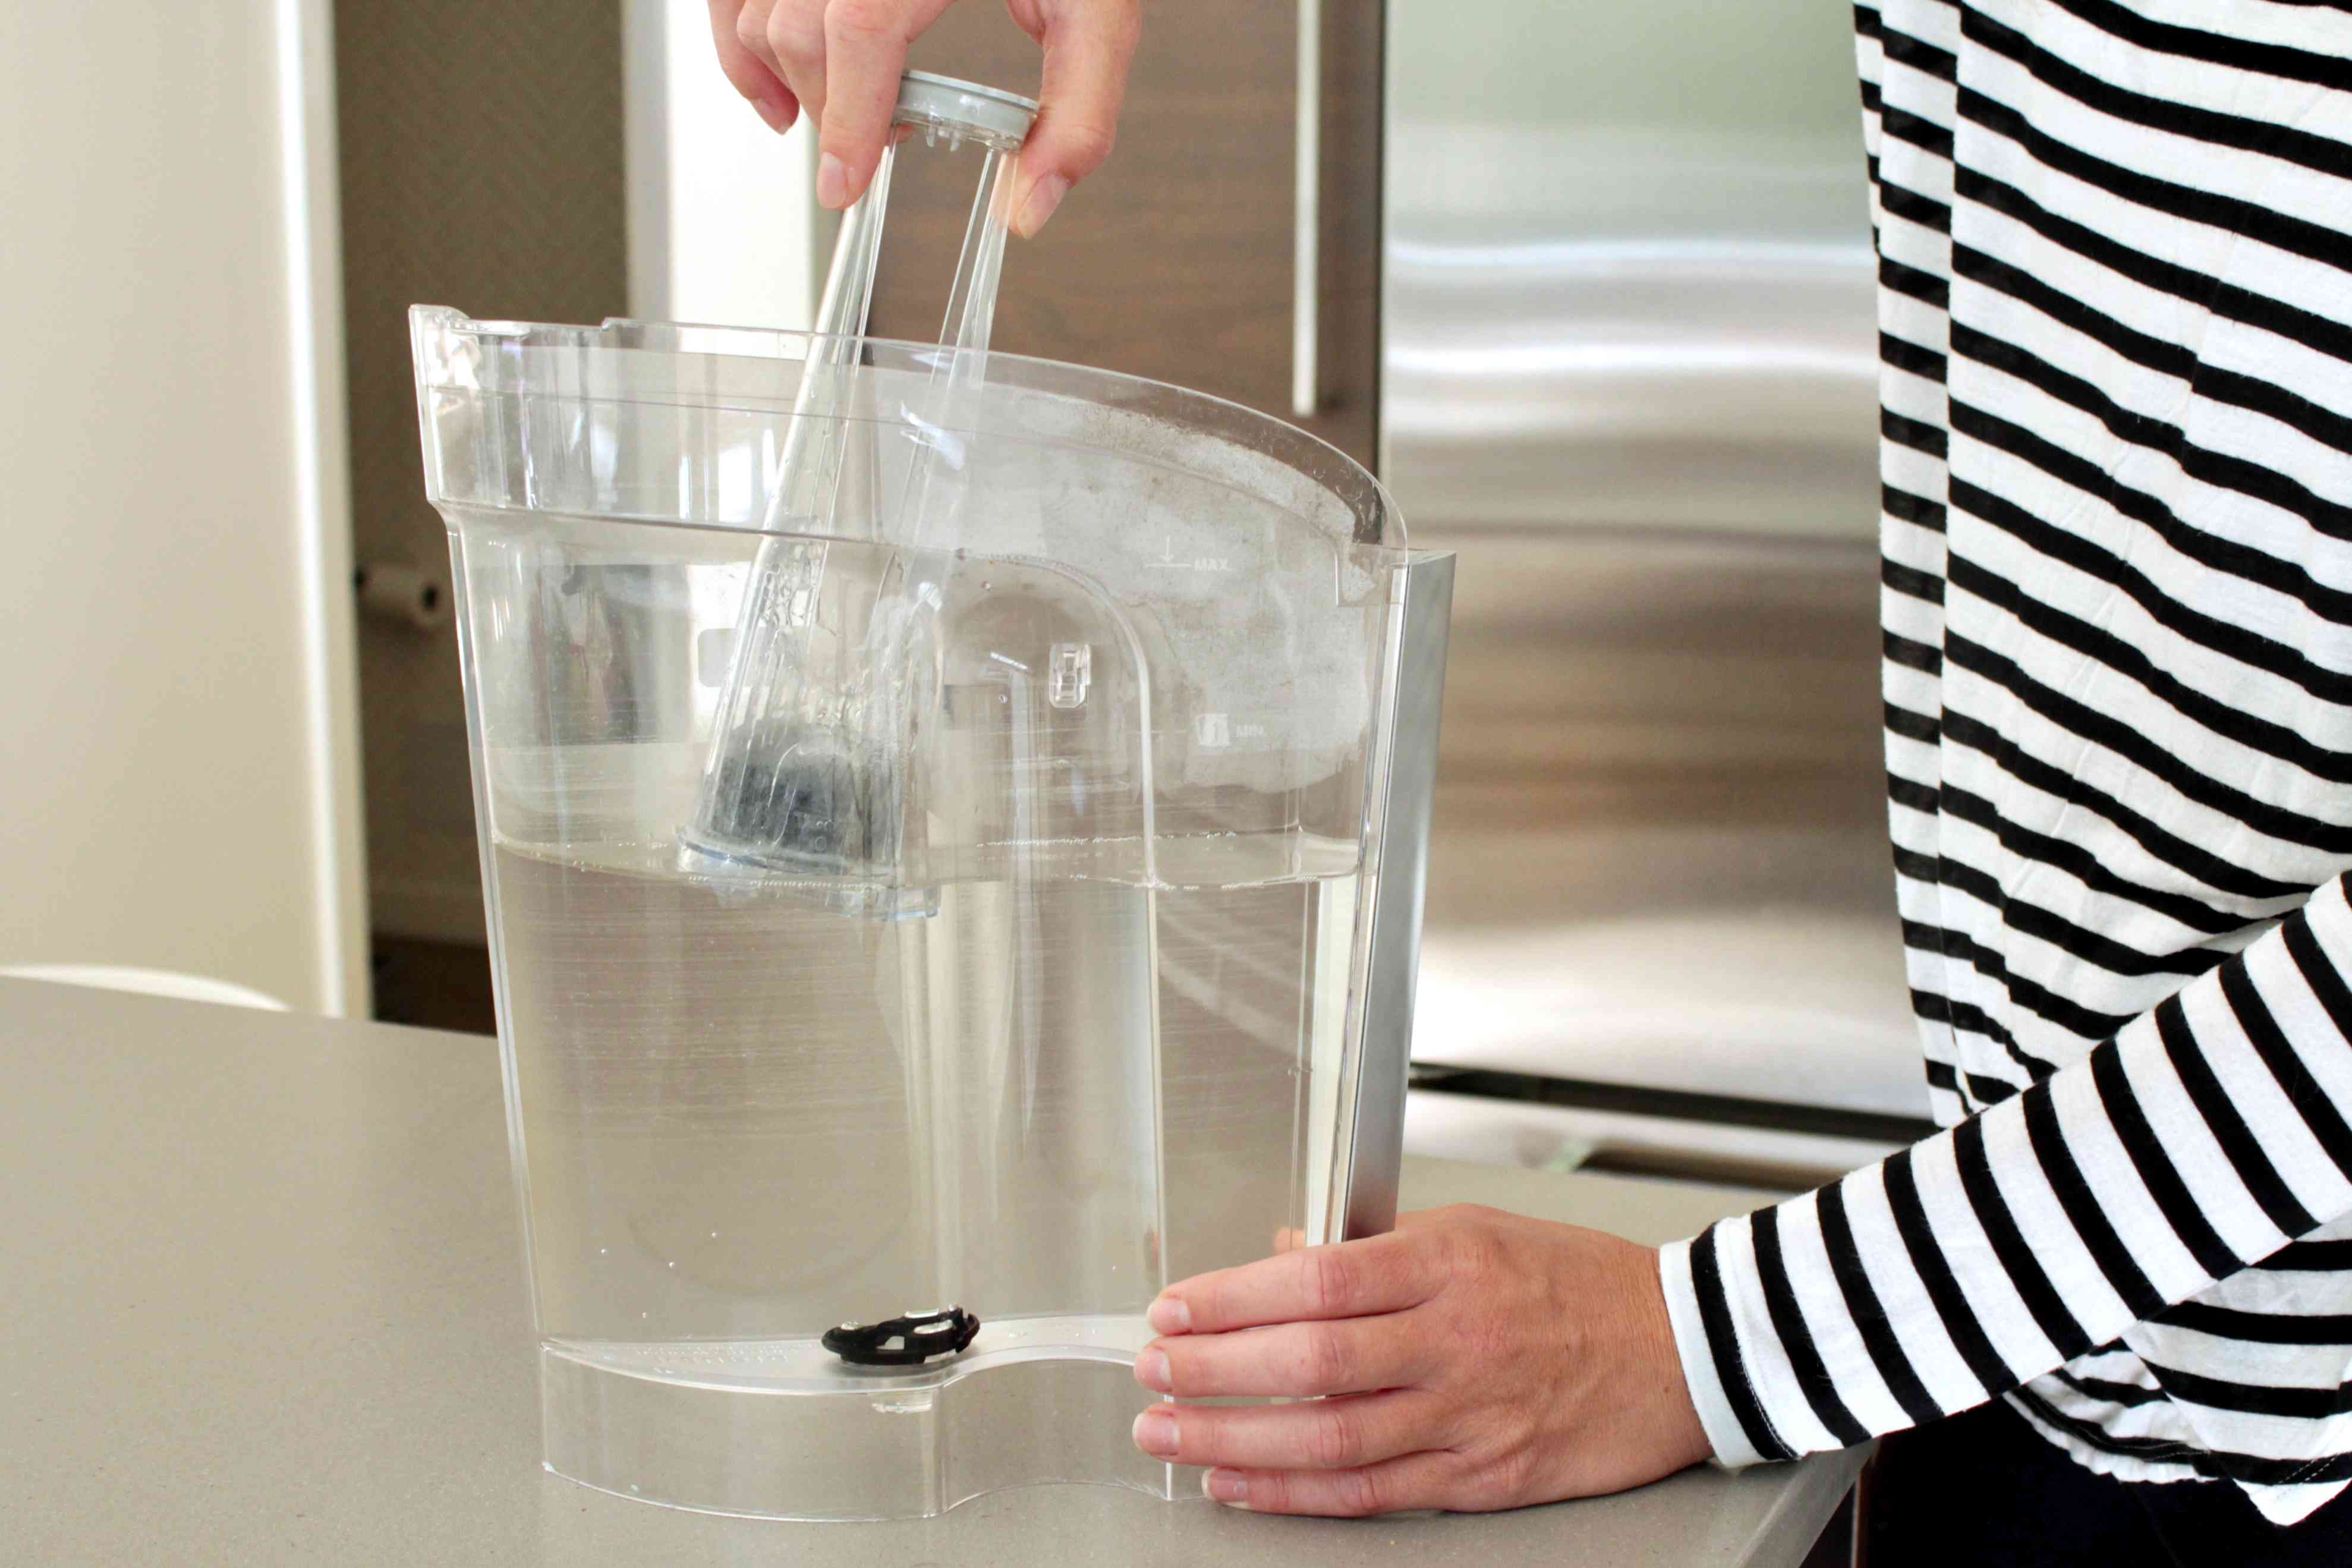 removing the water filter